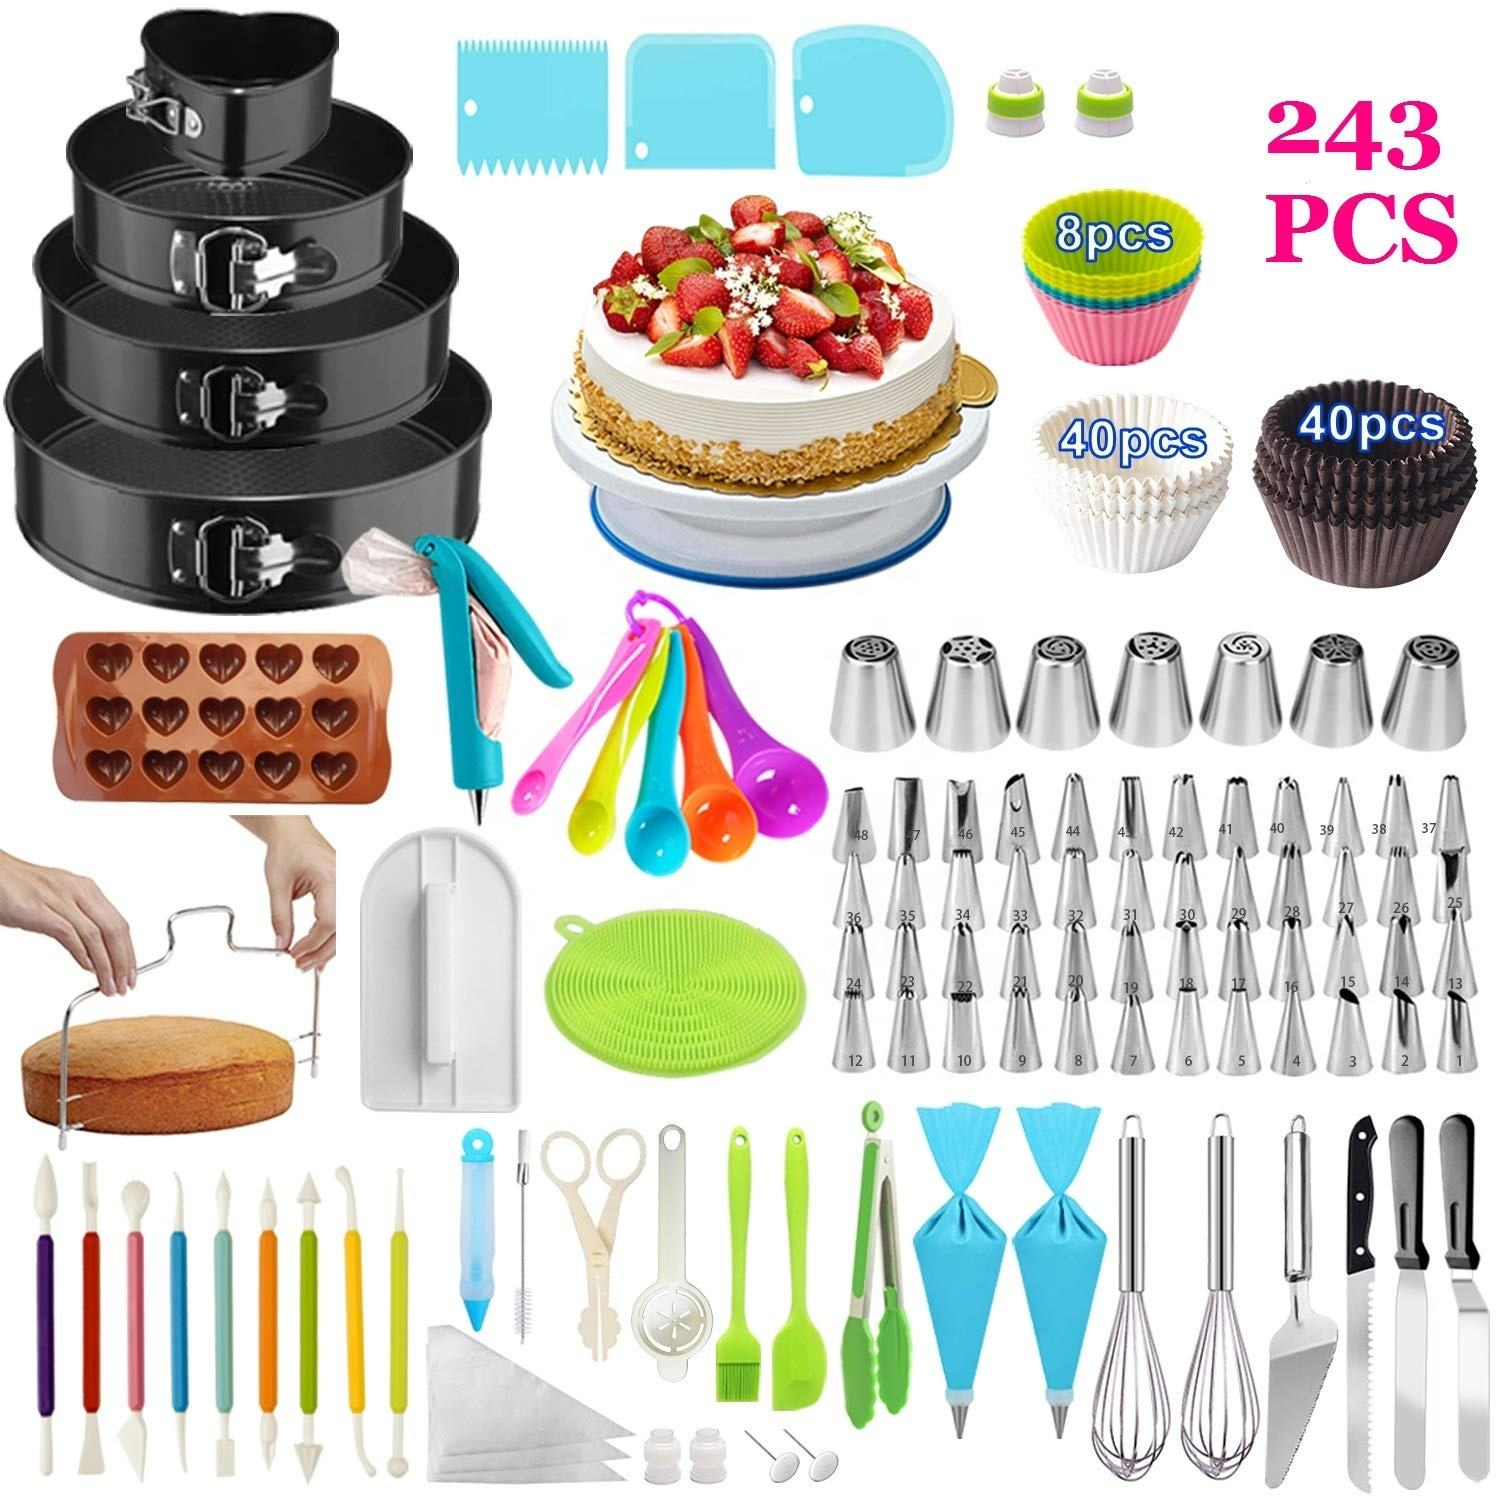 Hot Sale On Amazon Cake Decorating tools Cake Decorating Supplies Cake rotating turntable Supplies